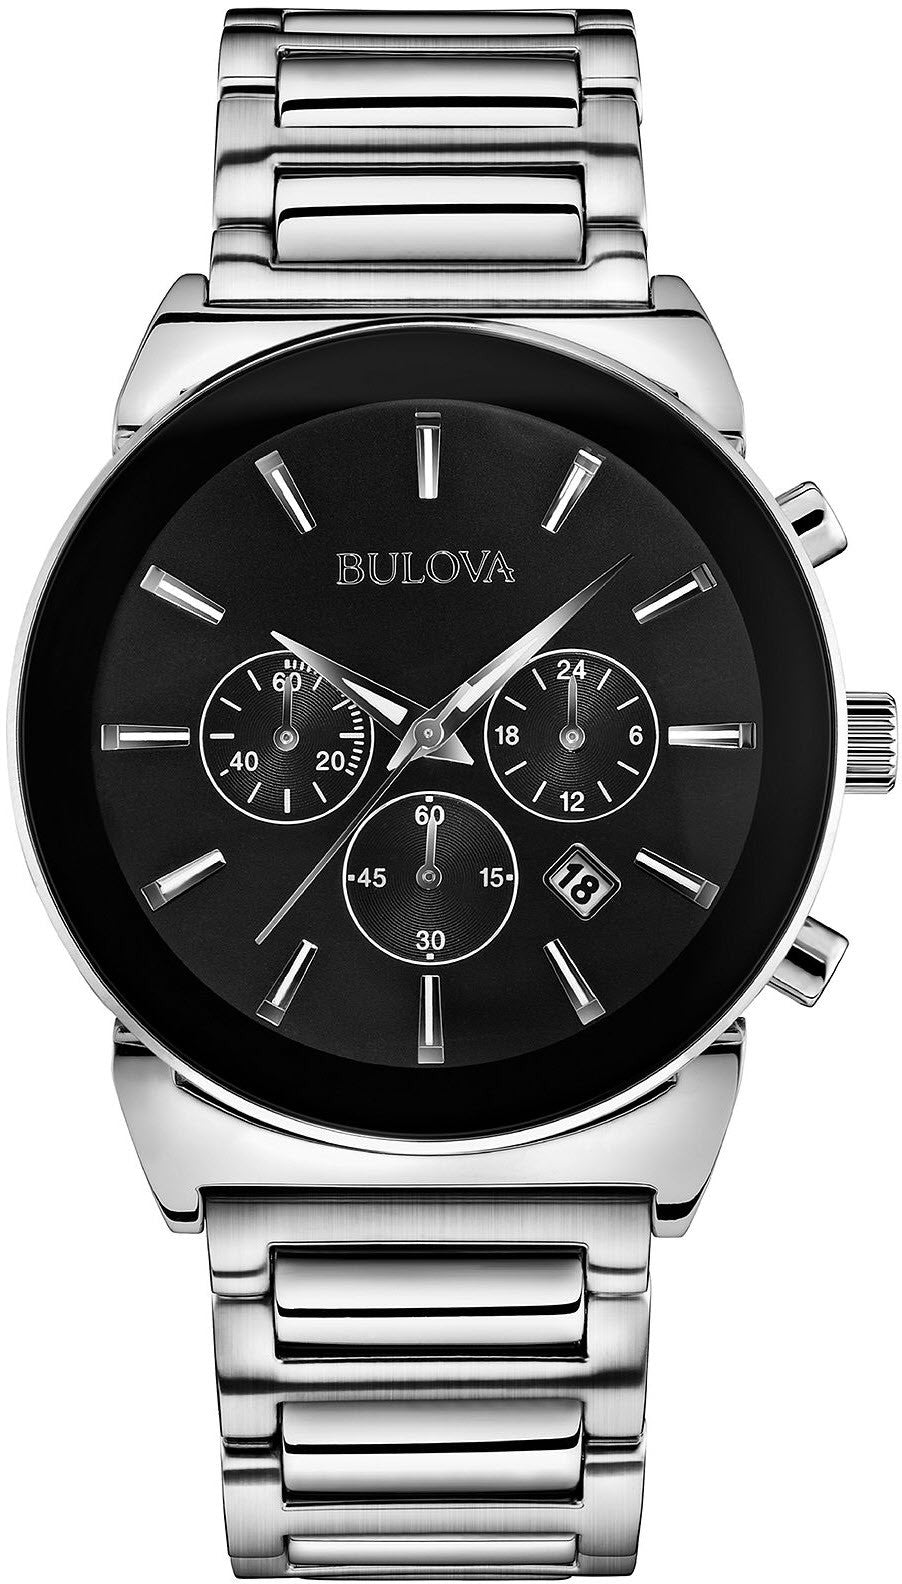 Bulova Watch Gents Dress D